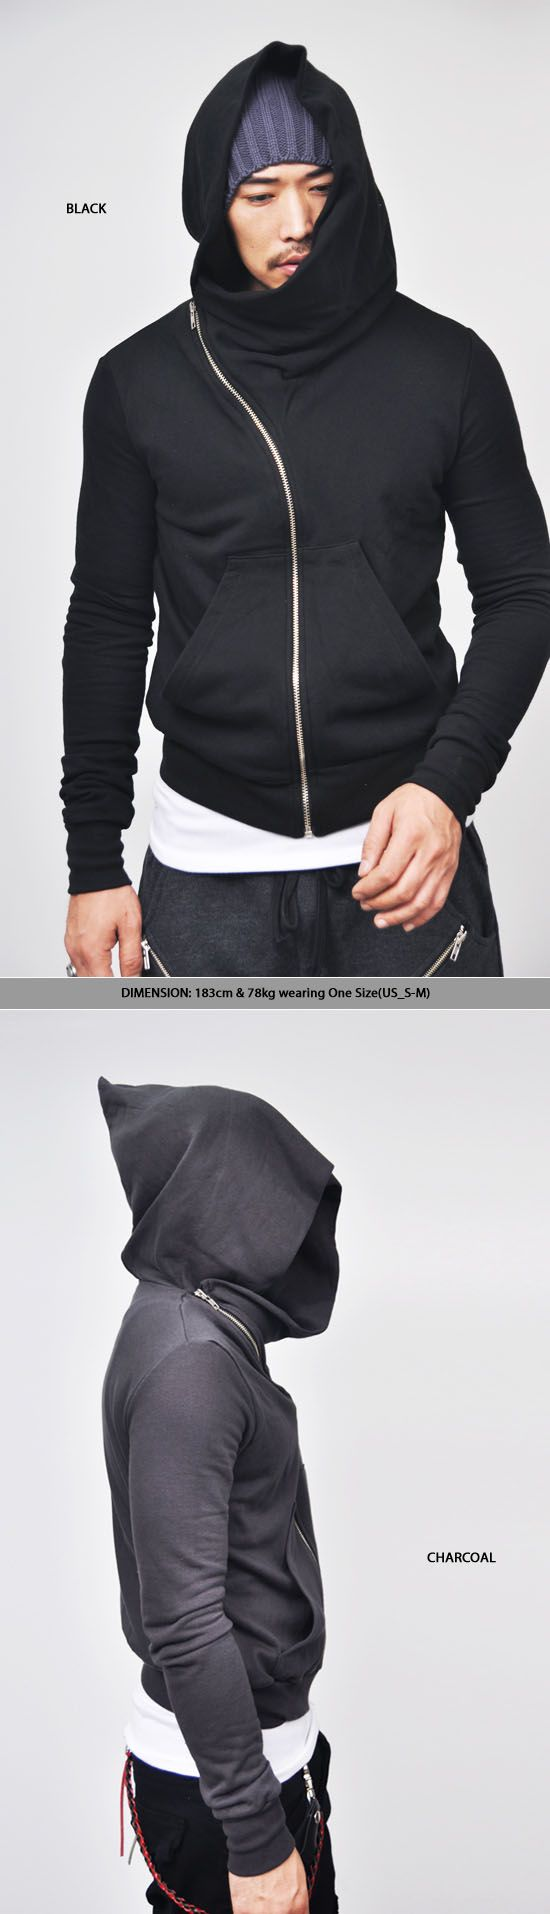 Tops :: Hoodies :: Avant-garde Diagonal Zipper Wizard-Hoodie 17 - Mens Fashion Clothing For An Attractive Guy Look